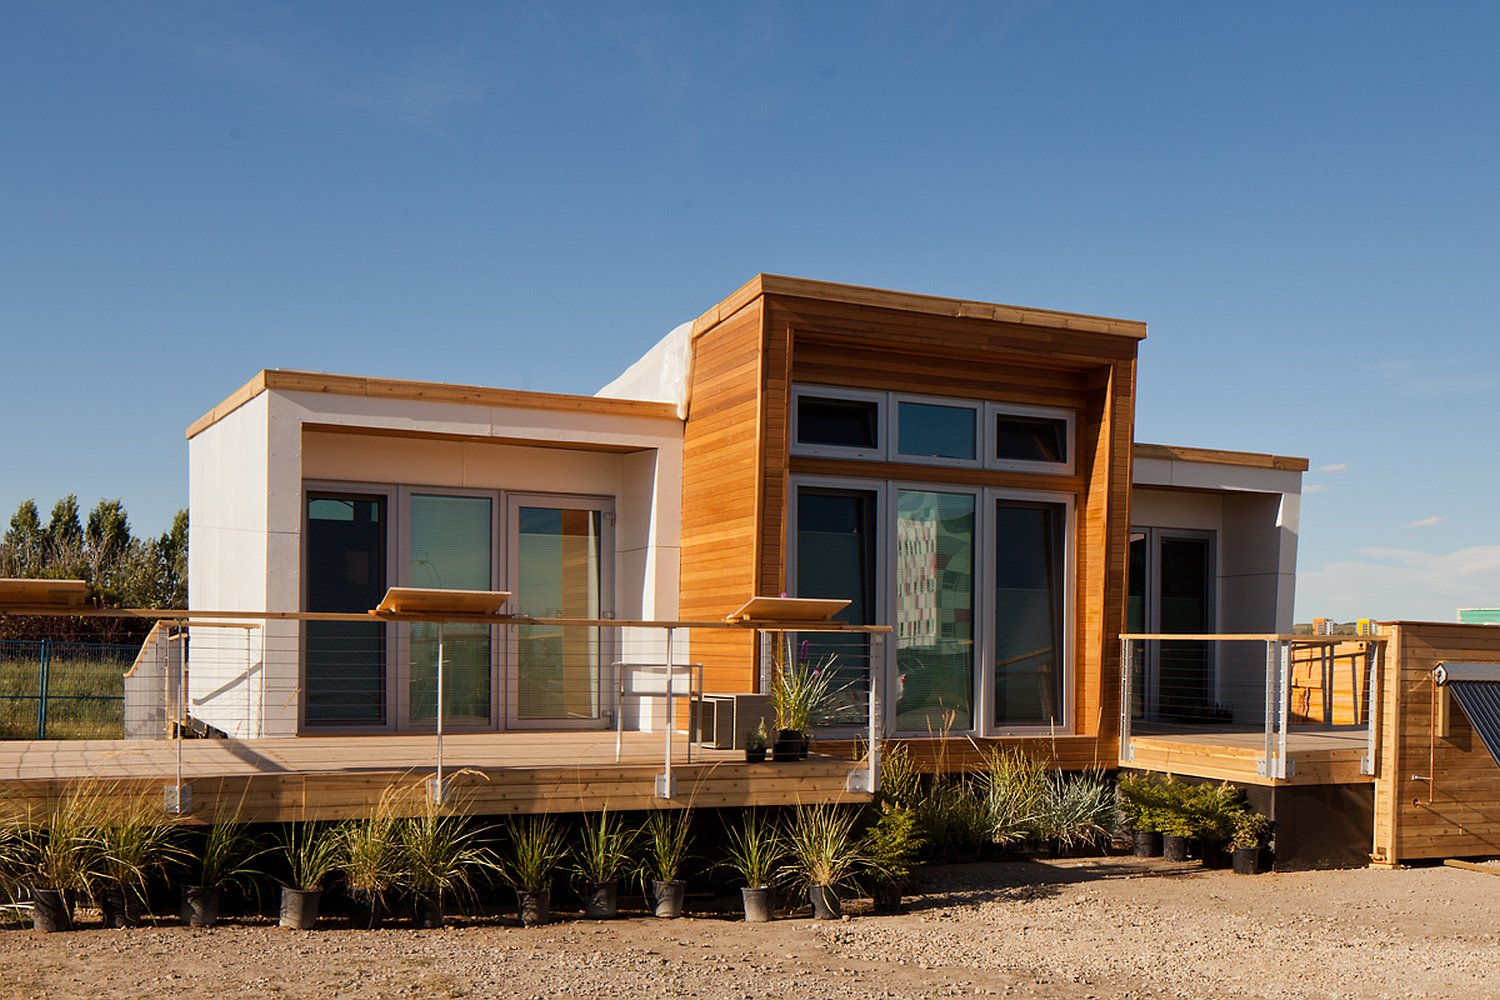 Gallery Solar Decathlon 2013 Borealis A Small House For